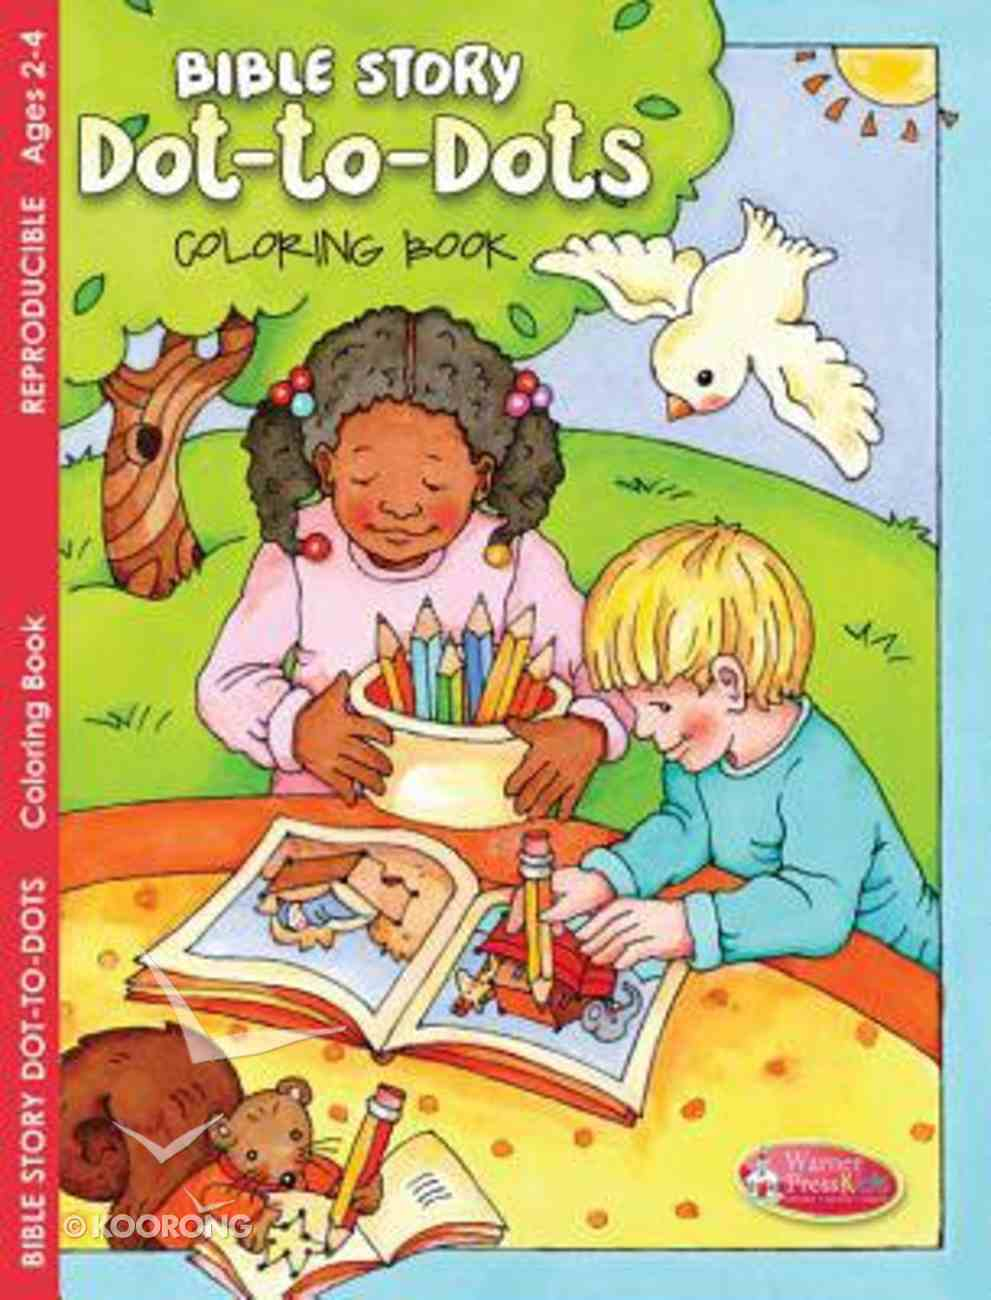 Bible Story Dot-To-Dots Coloring Book (Ages 2-4) (Warner Press Colouring/activity Under 5's Series) Paperback